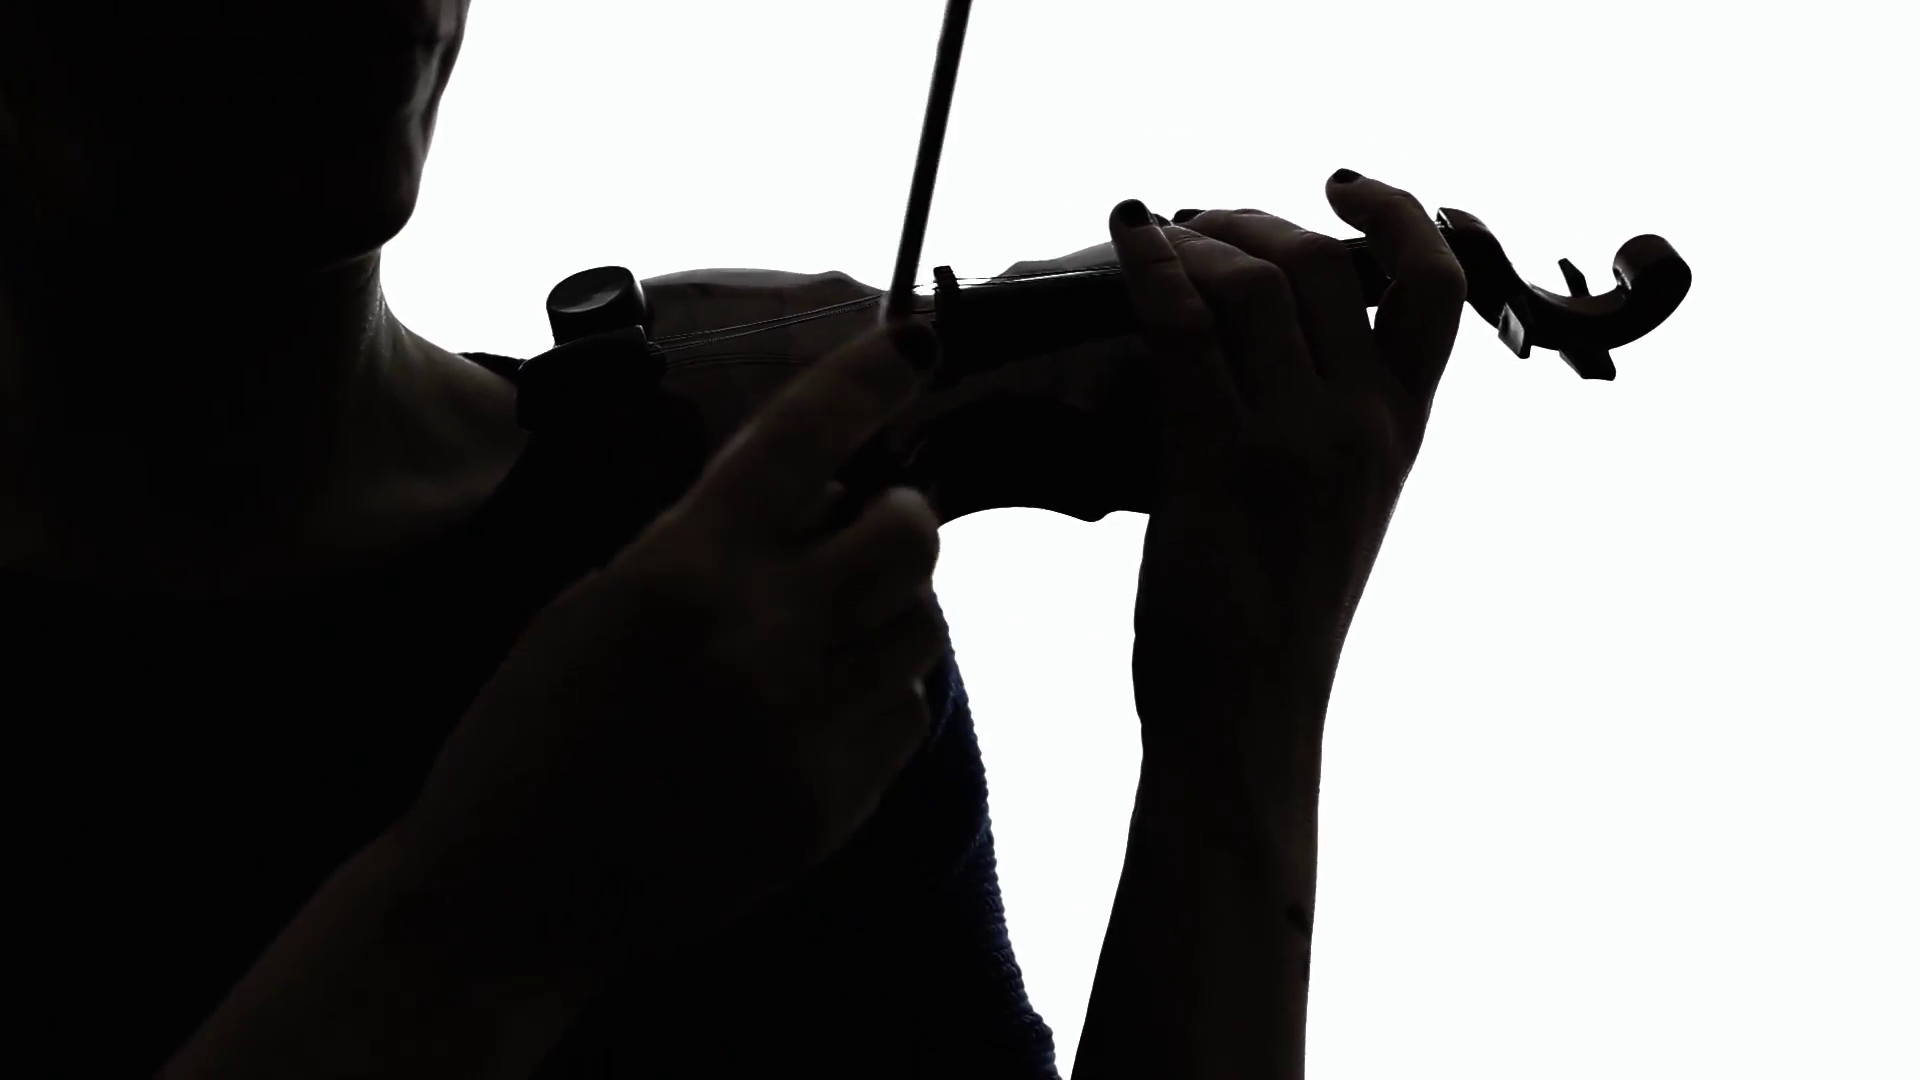 1920x1080 Silhouette Violin Woman Play Ms. The Silhouette Of A Woman Playing